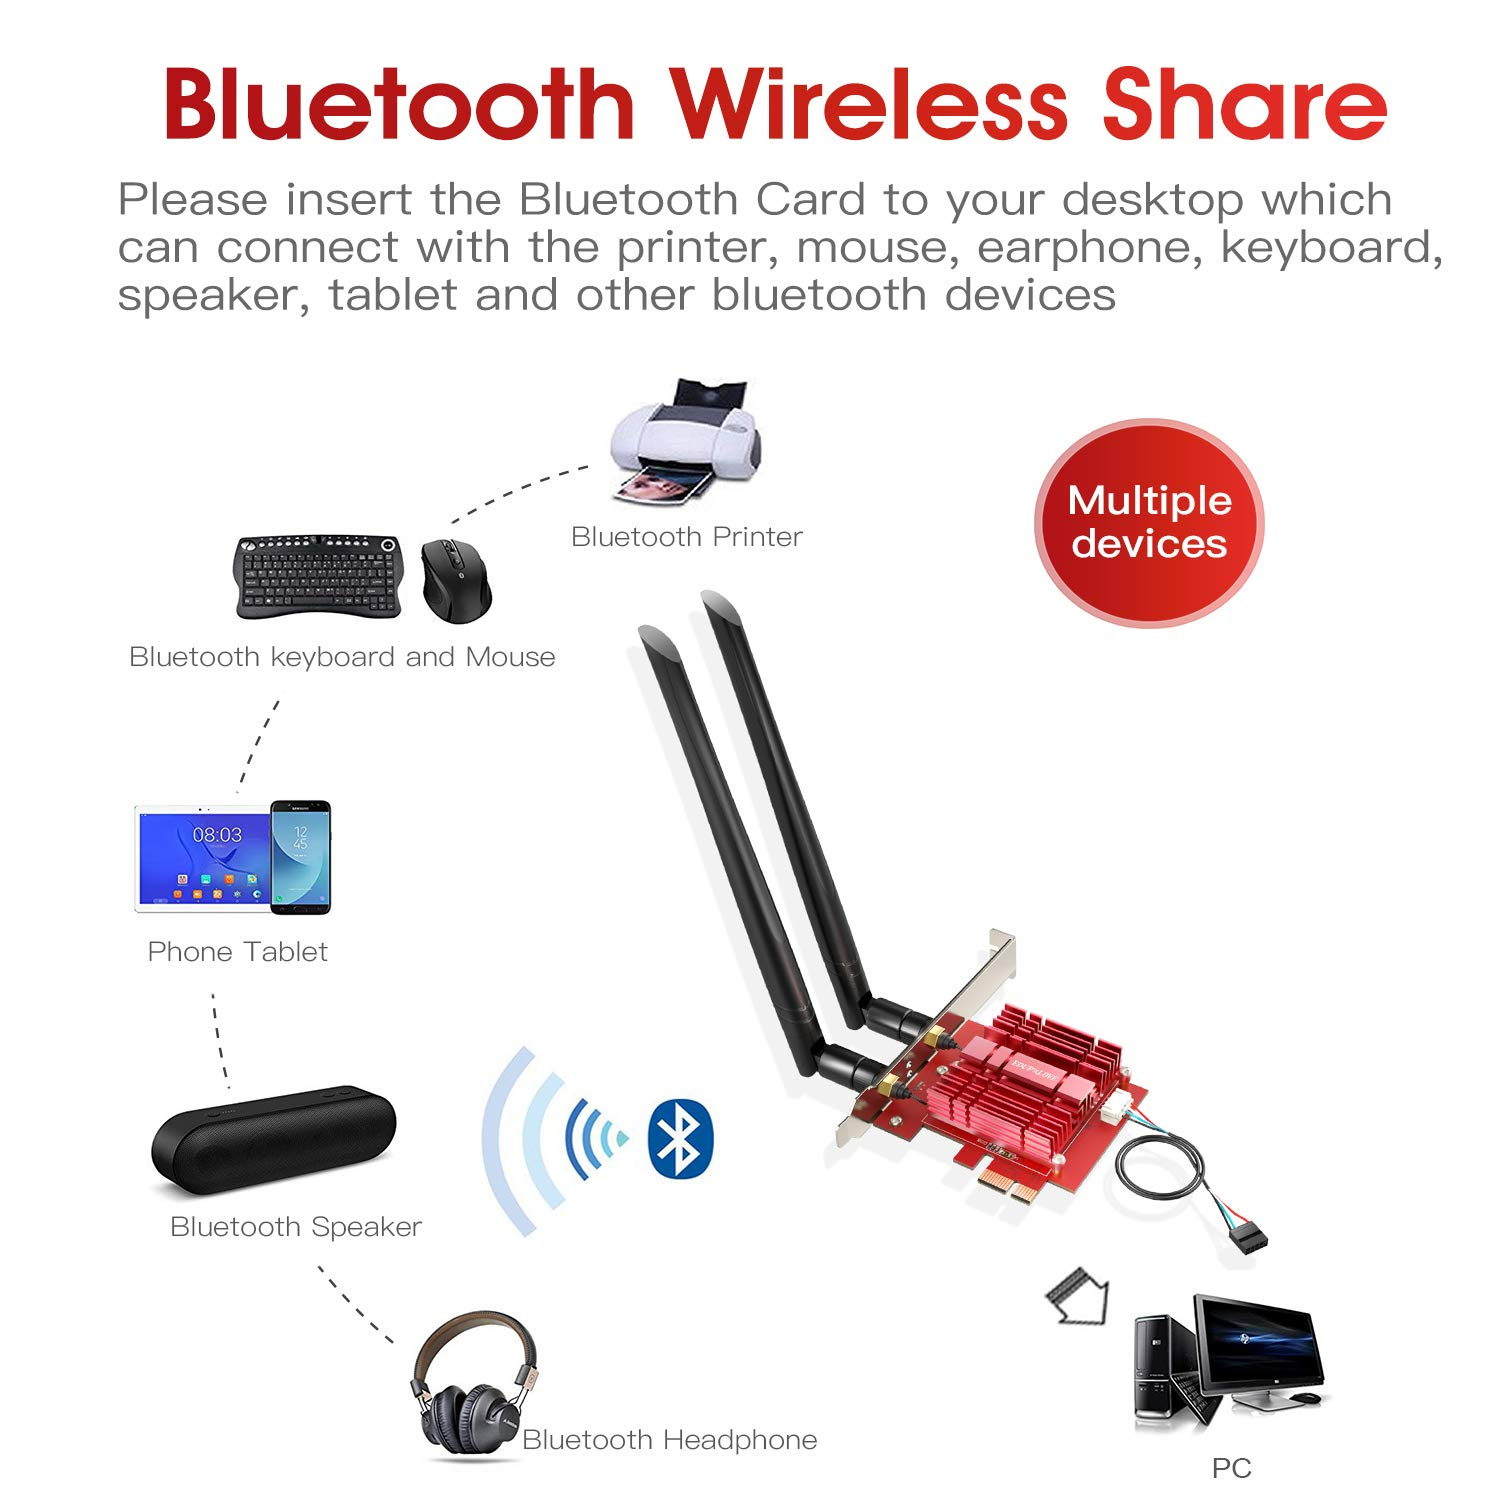 EDUP LOVE WiFi 6 Card AX200 3000Mbps PCIe Bluetooth 5.0 Network Card 802.11AX 2.4Ghz//5.8Ghz with Heat Sink Technology Wireless PCI Express Wi-Fi Adapters for Windows 10 64-bit